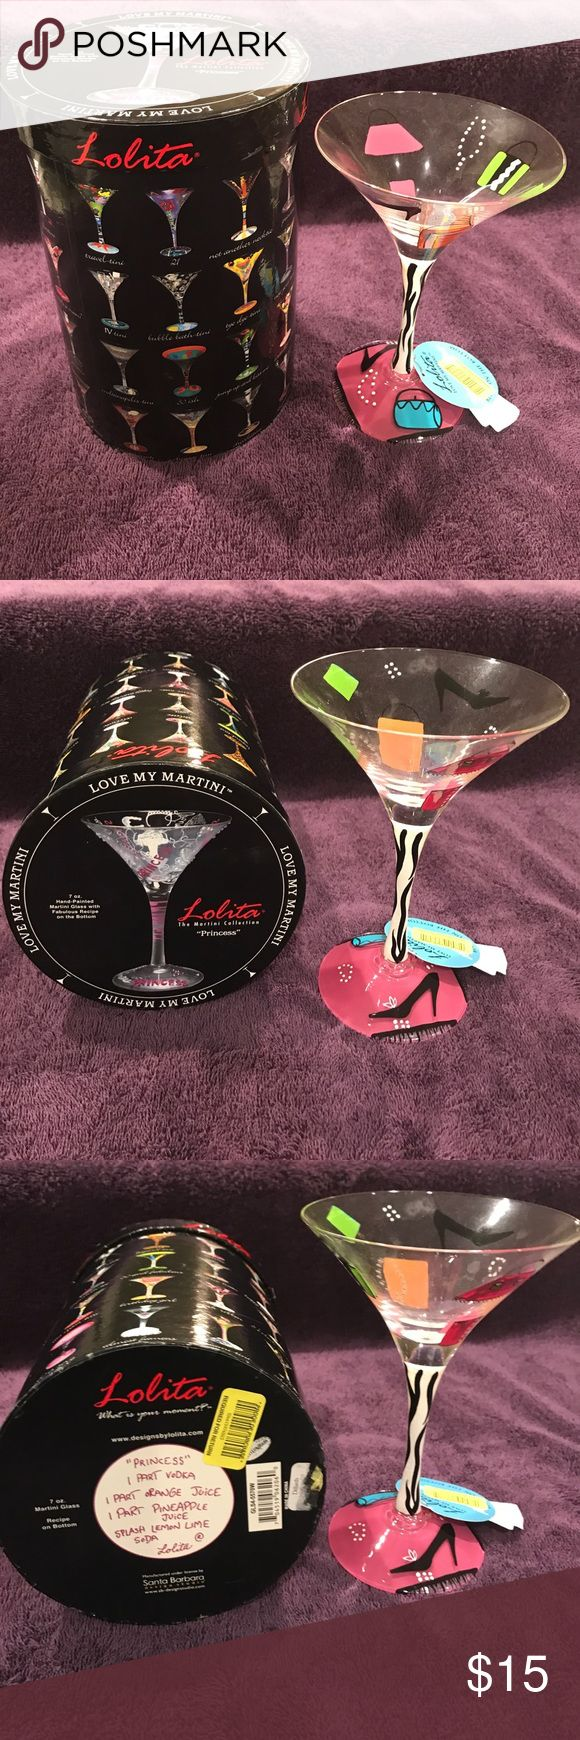 """PRICE REDUCTION New Lolita Princess Martini Glass PRICE REDUCTION New Lolita """"Princess"""" Martini Glass, Love My Martini Special Container with """"Princesses"""" Martini Recipe on Bottom of Container & """"Shopaholic Too"""" Martini Recipe on Bottom of Glass Lolita Other"""